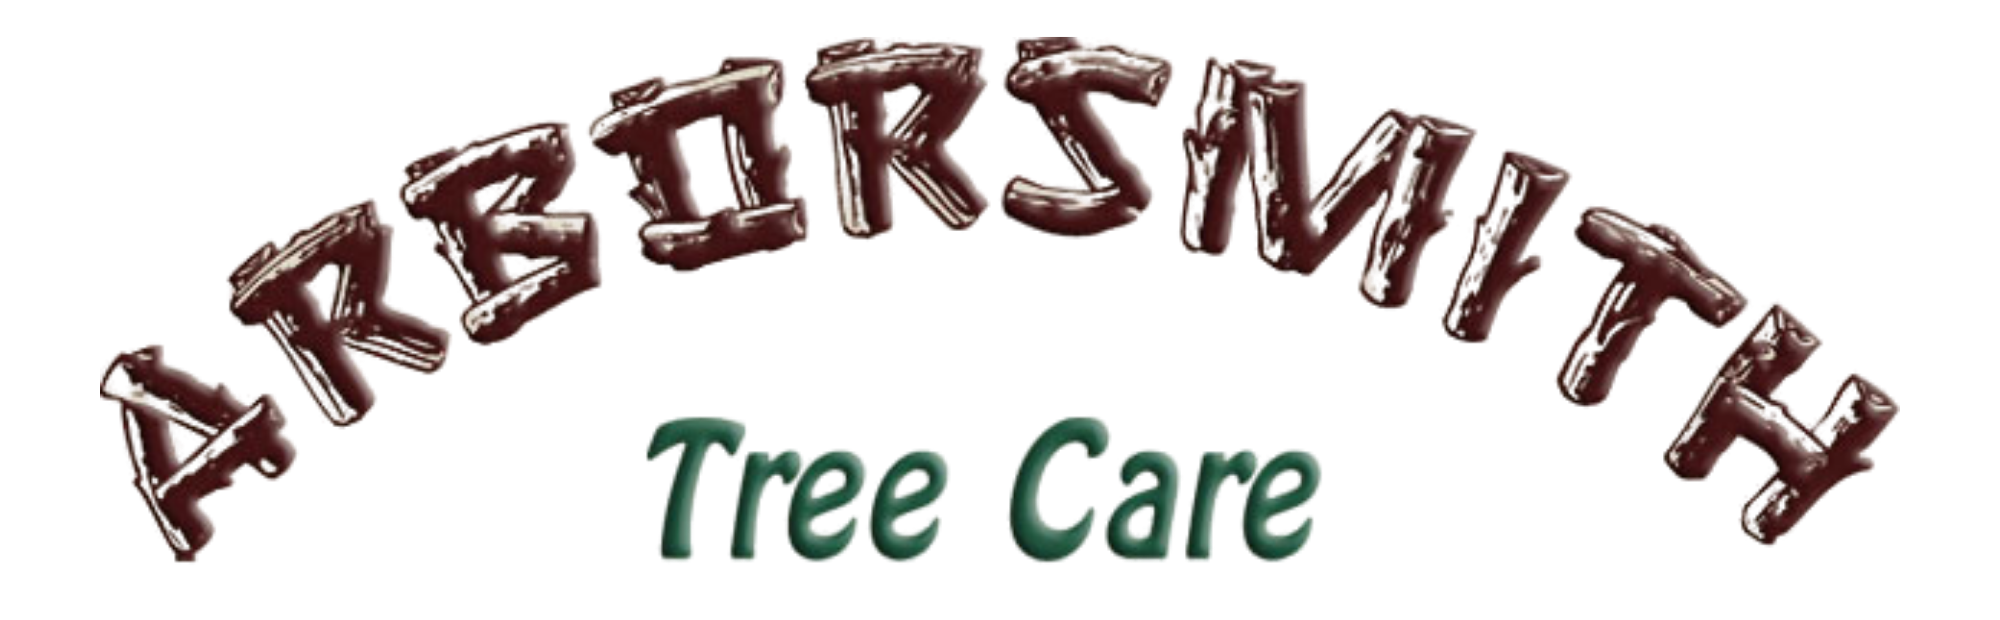 Tree Trimming Tree Service offering tree pruning, tree removal, tree cutting, and tree trimming service. Serving Camas, Washougal, Vancouver, LaCenter | Arborsmith Tree Care